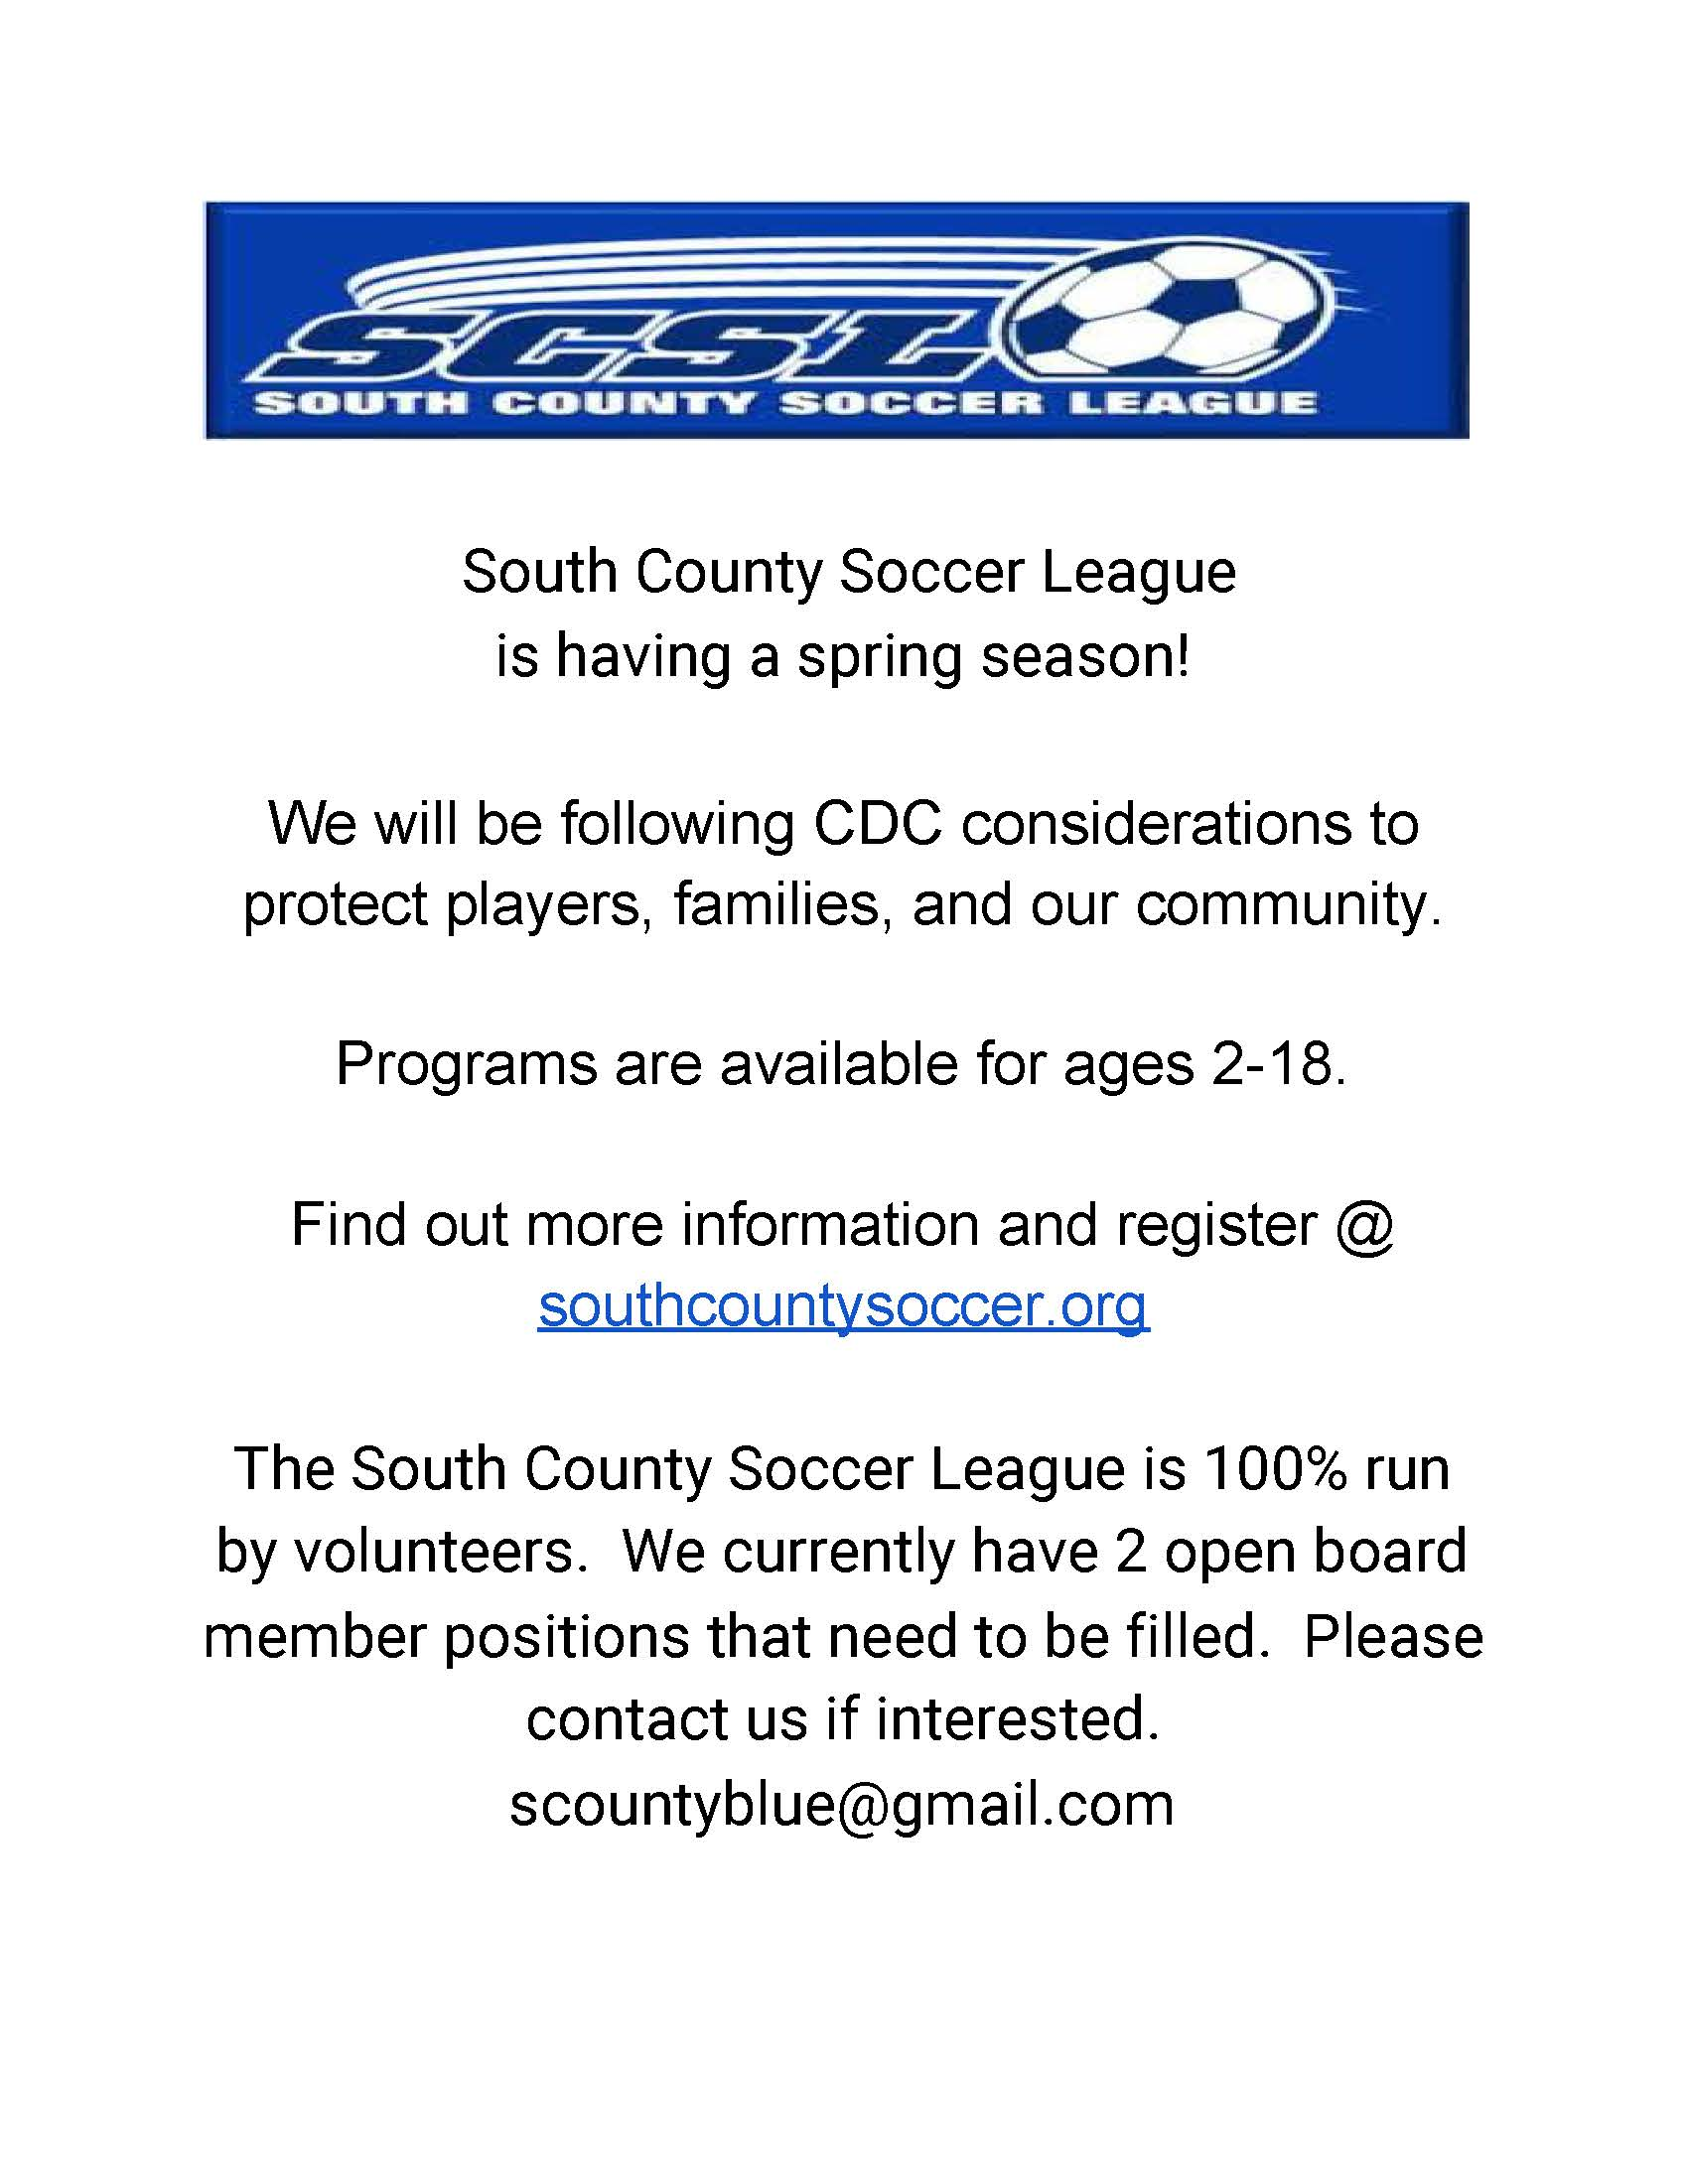 SCSL SPRING FLYER Opens in new window